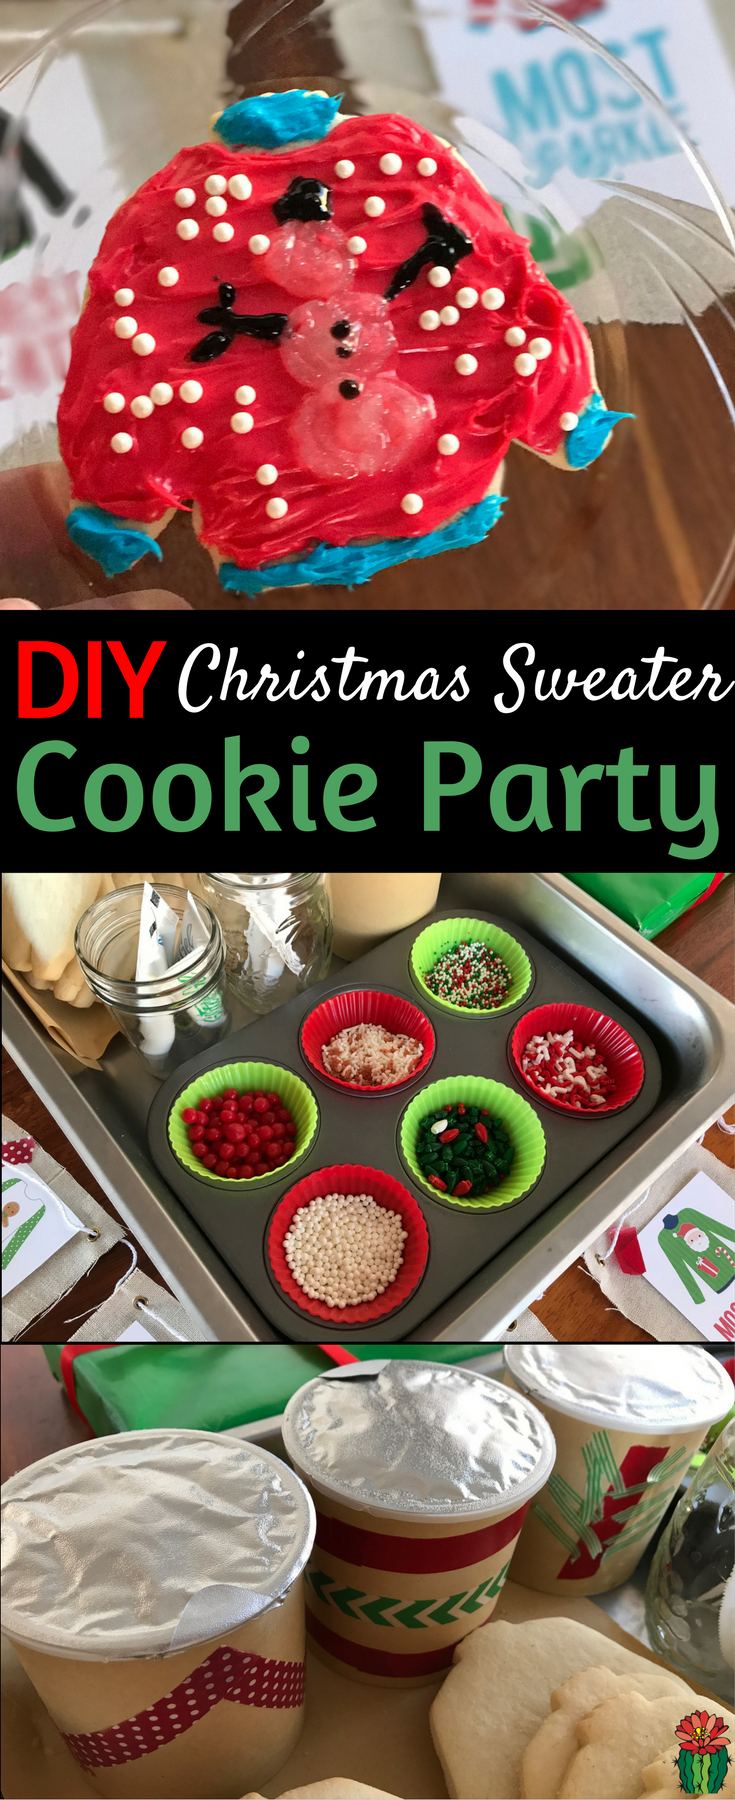 Kick your Christmas cookie decorating party up a notch by combining it with an ugly Christmas sweater party & decorate ugly Christmas sweater cookies!